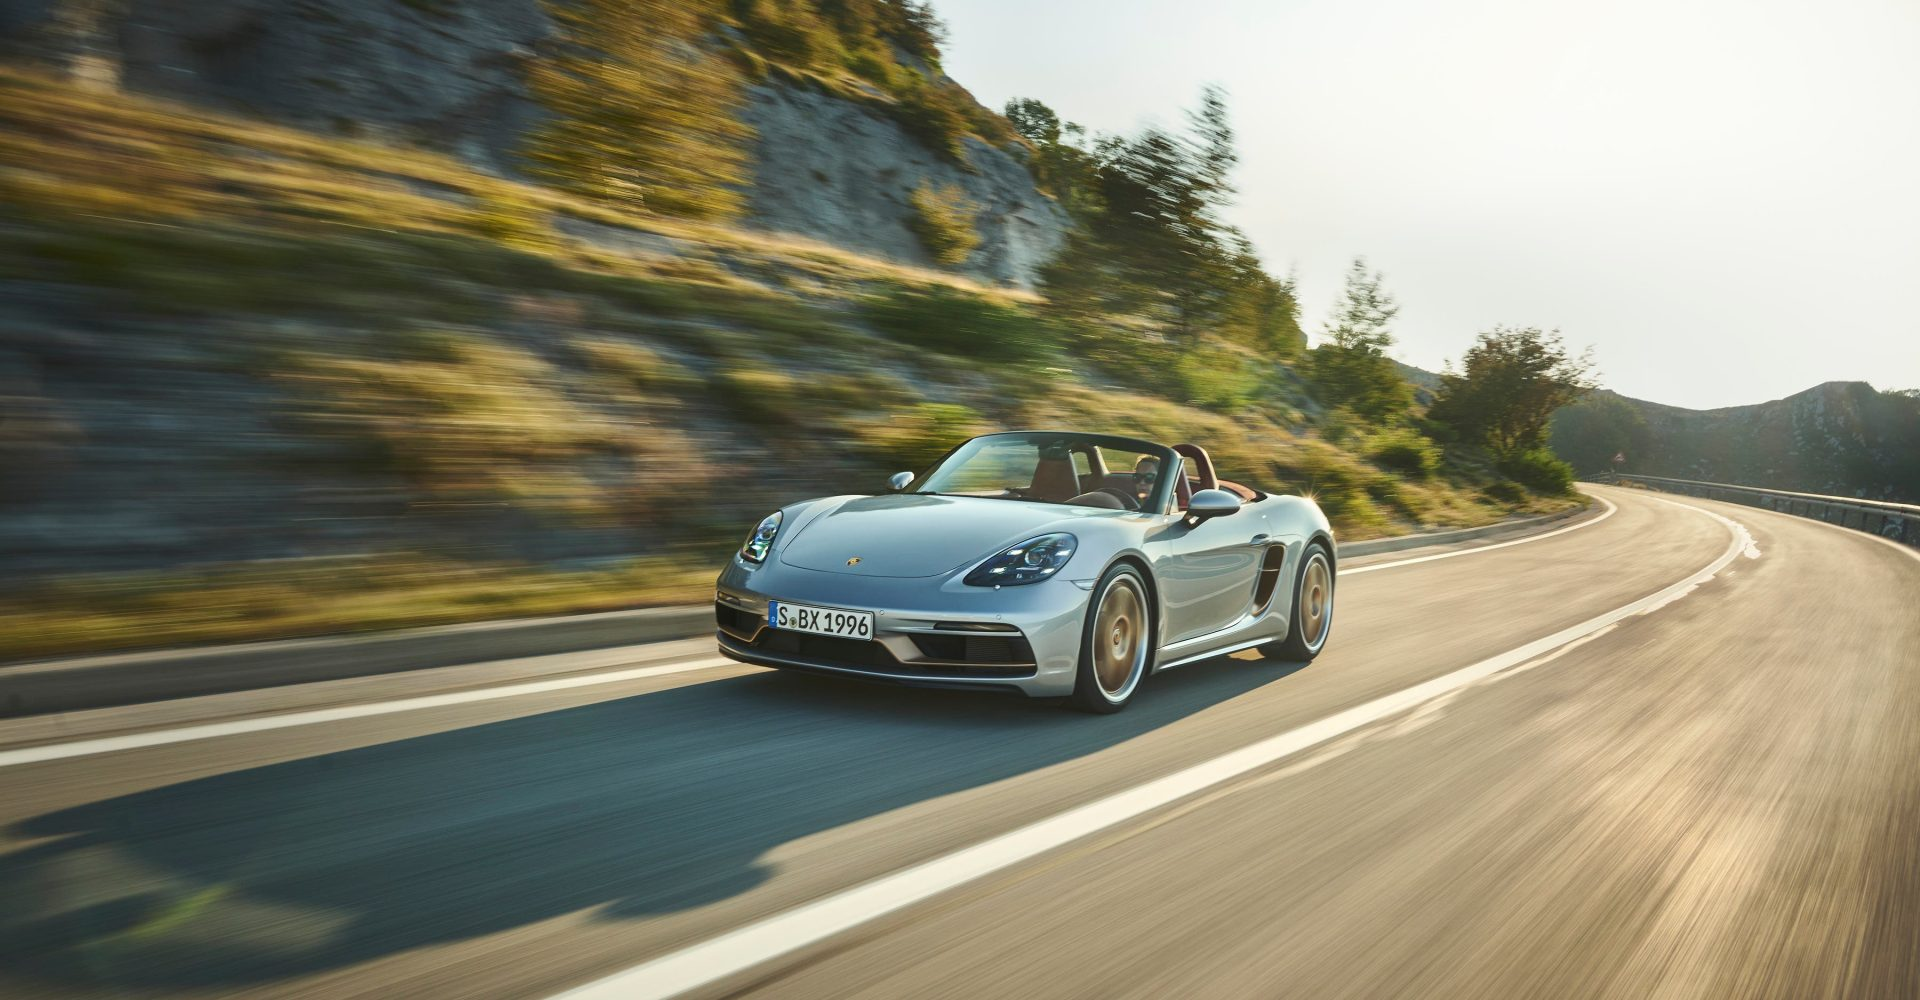 Special edition Porsche Boxster celebrates the roadster's 25th birthday